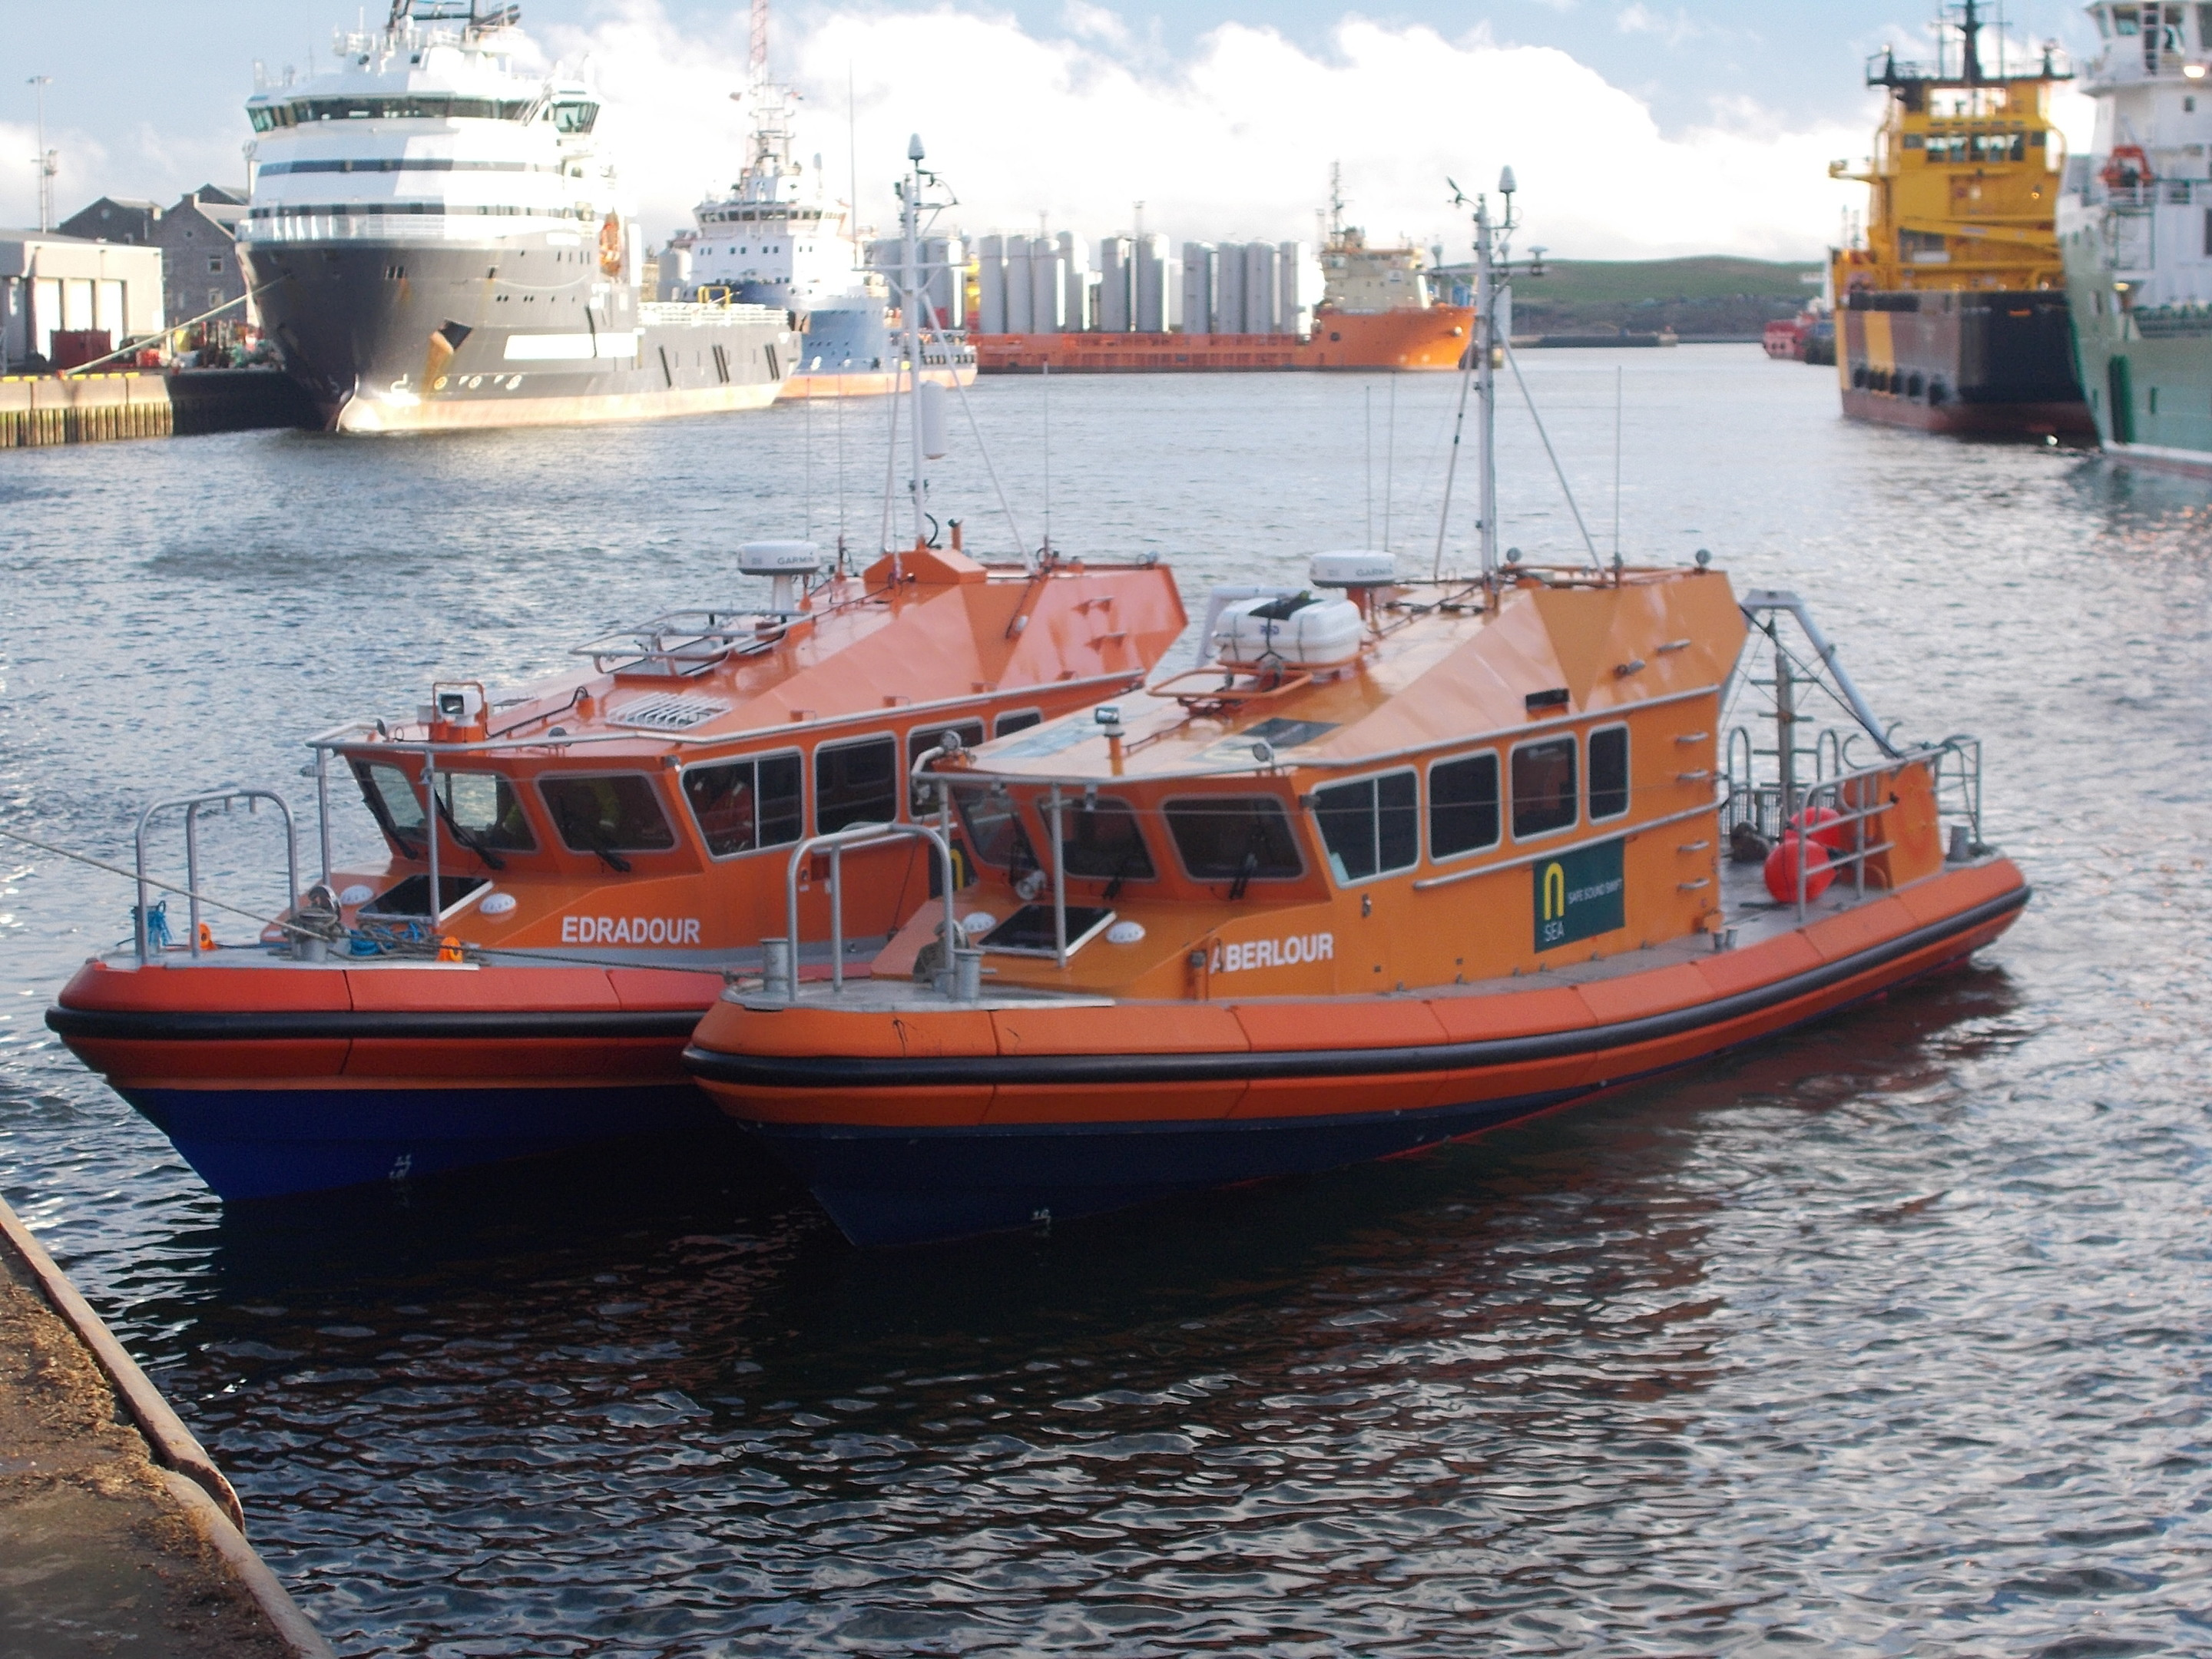 The Edradour with its sister vessel The Aberlour